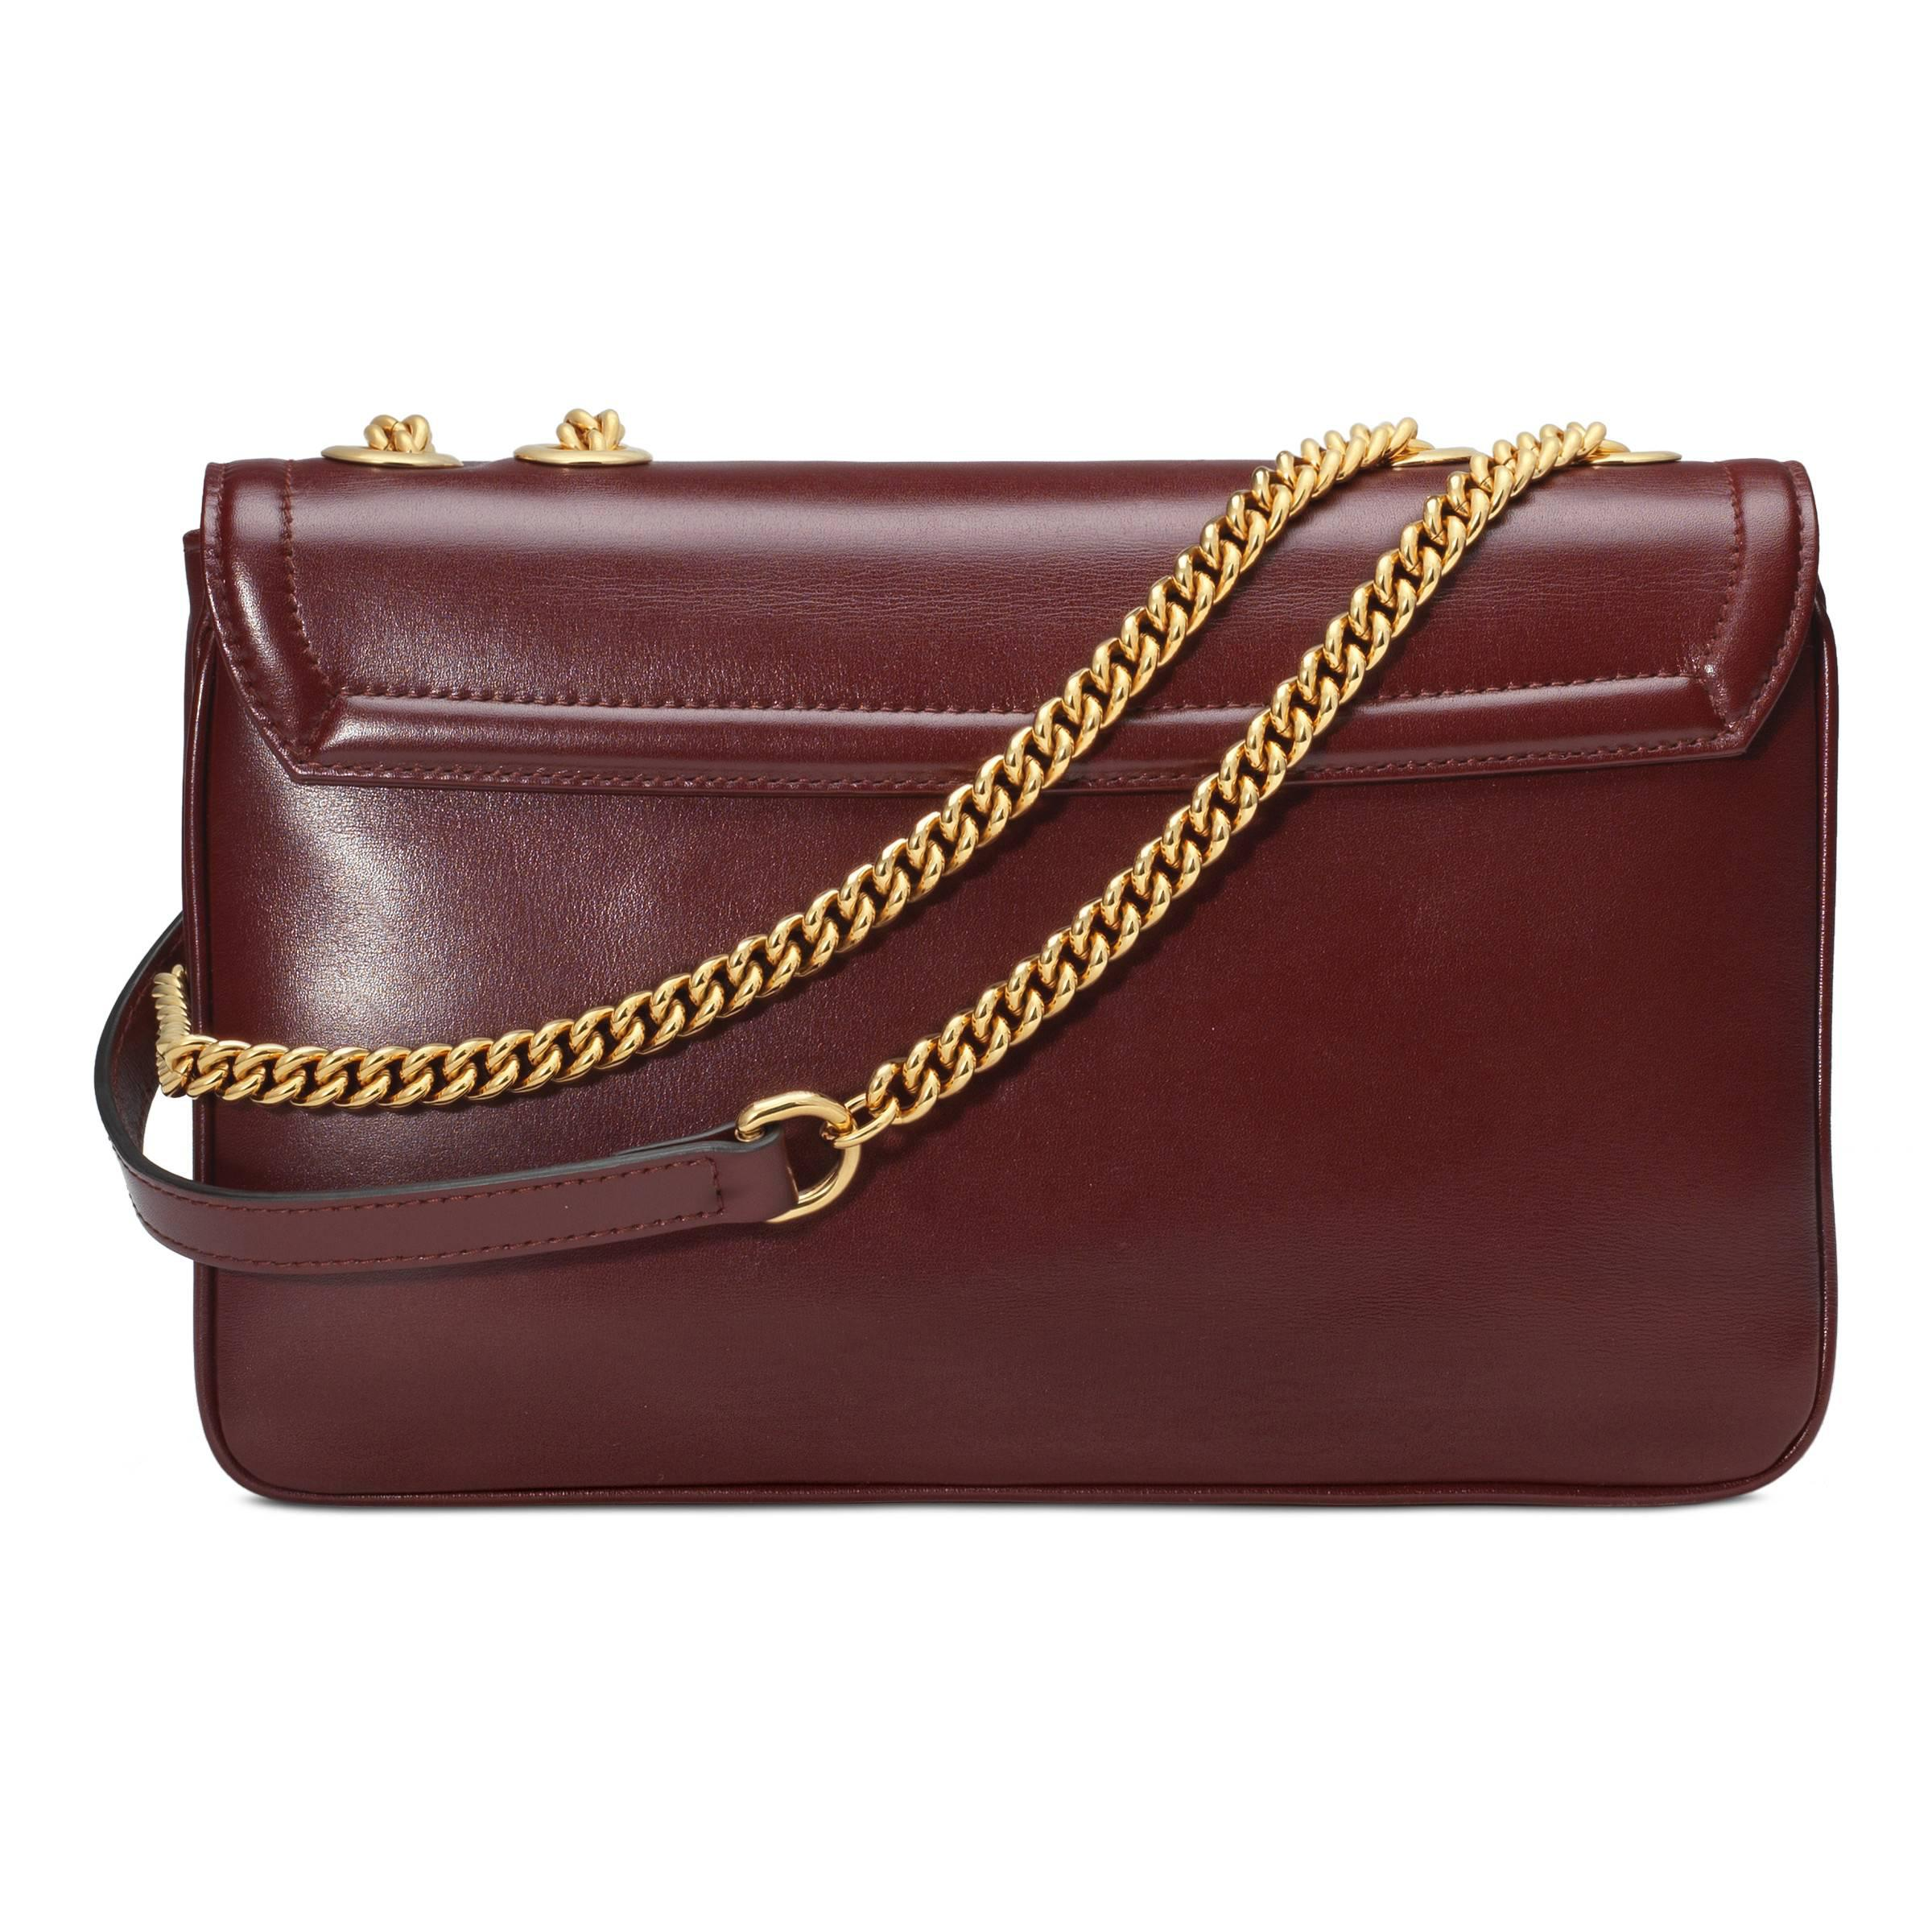 8b27e045b6f ... Rajah Medium Shoulder Bag - Lyst. View fullscreen